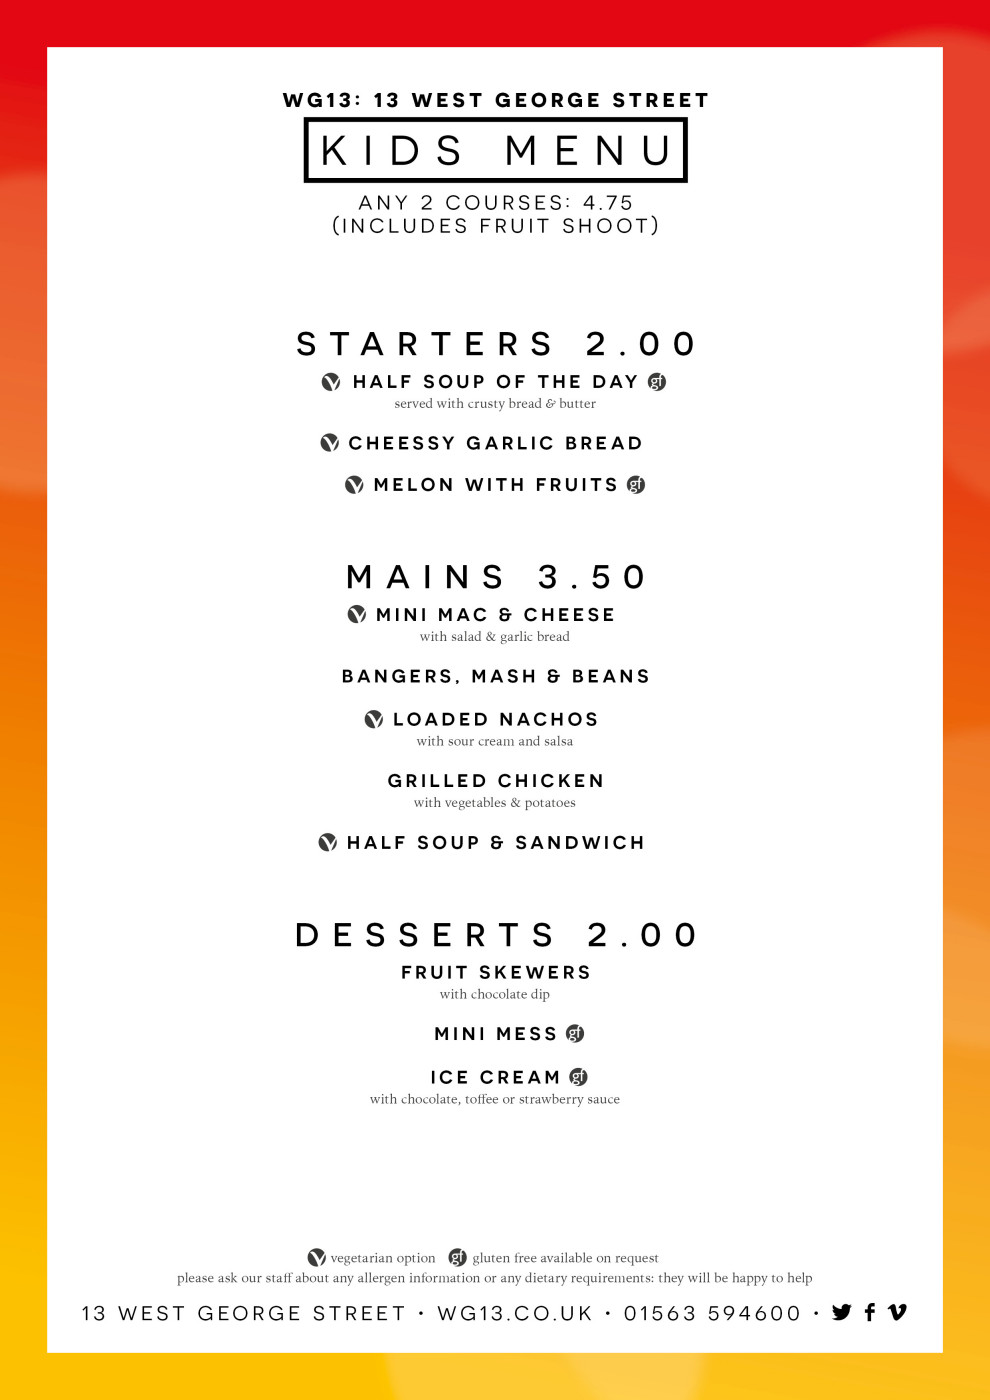 WG13 Kids Menu